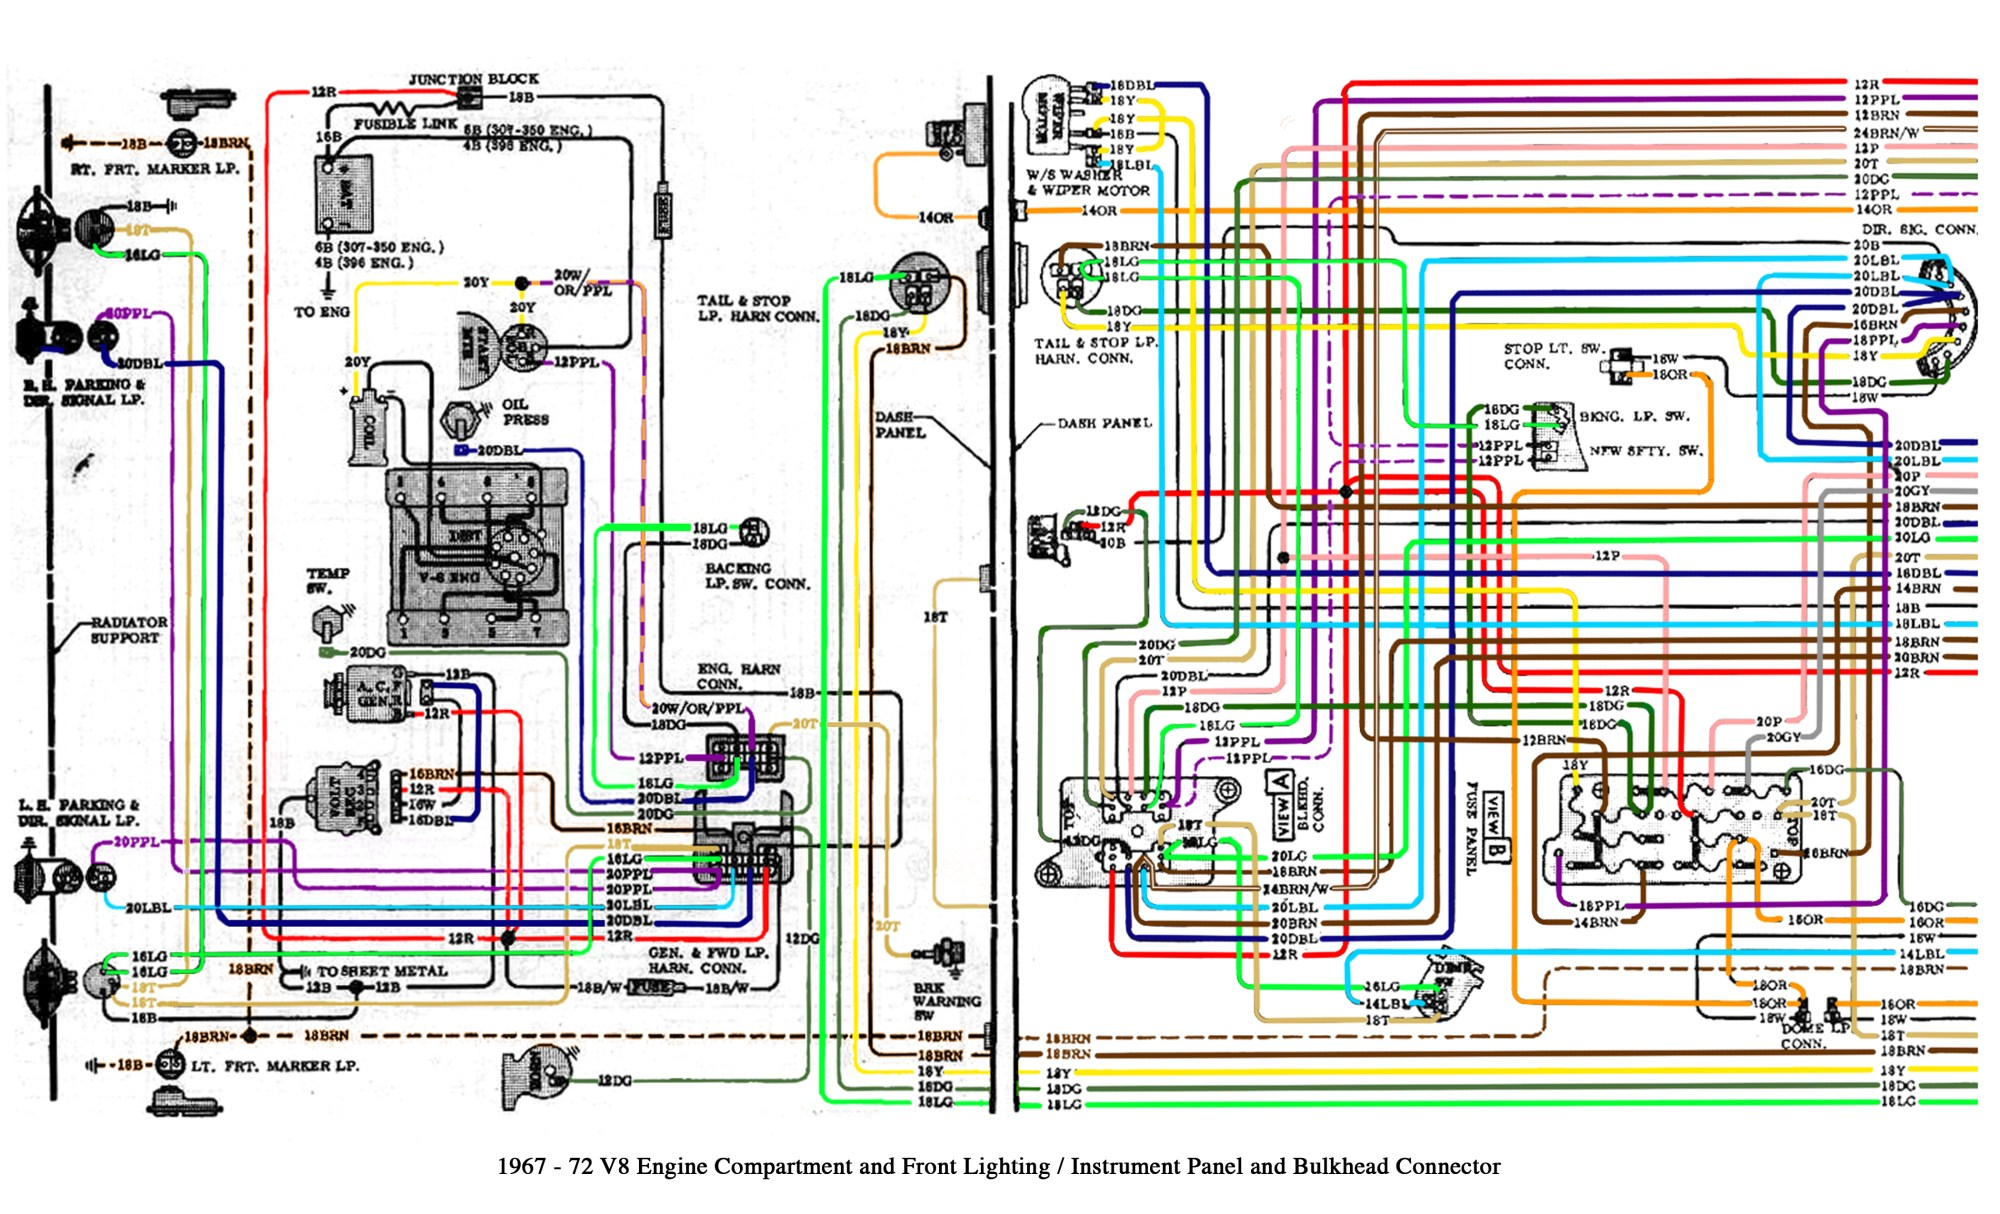 hight resolution of 1972 chevy pickup fuse box wiring diagram portal 89 camaro fuse box diagram 1972 chevy fuse box diagram